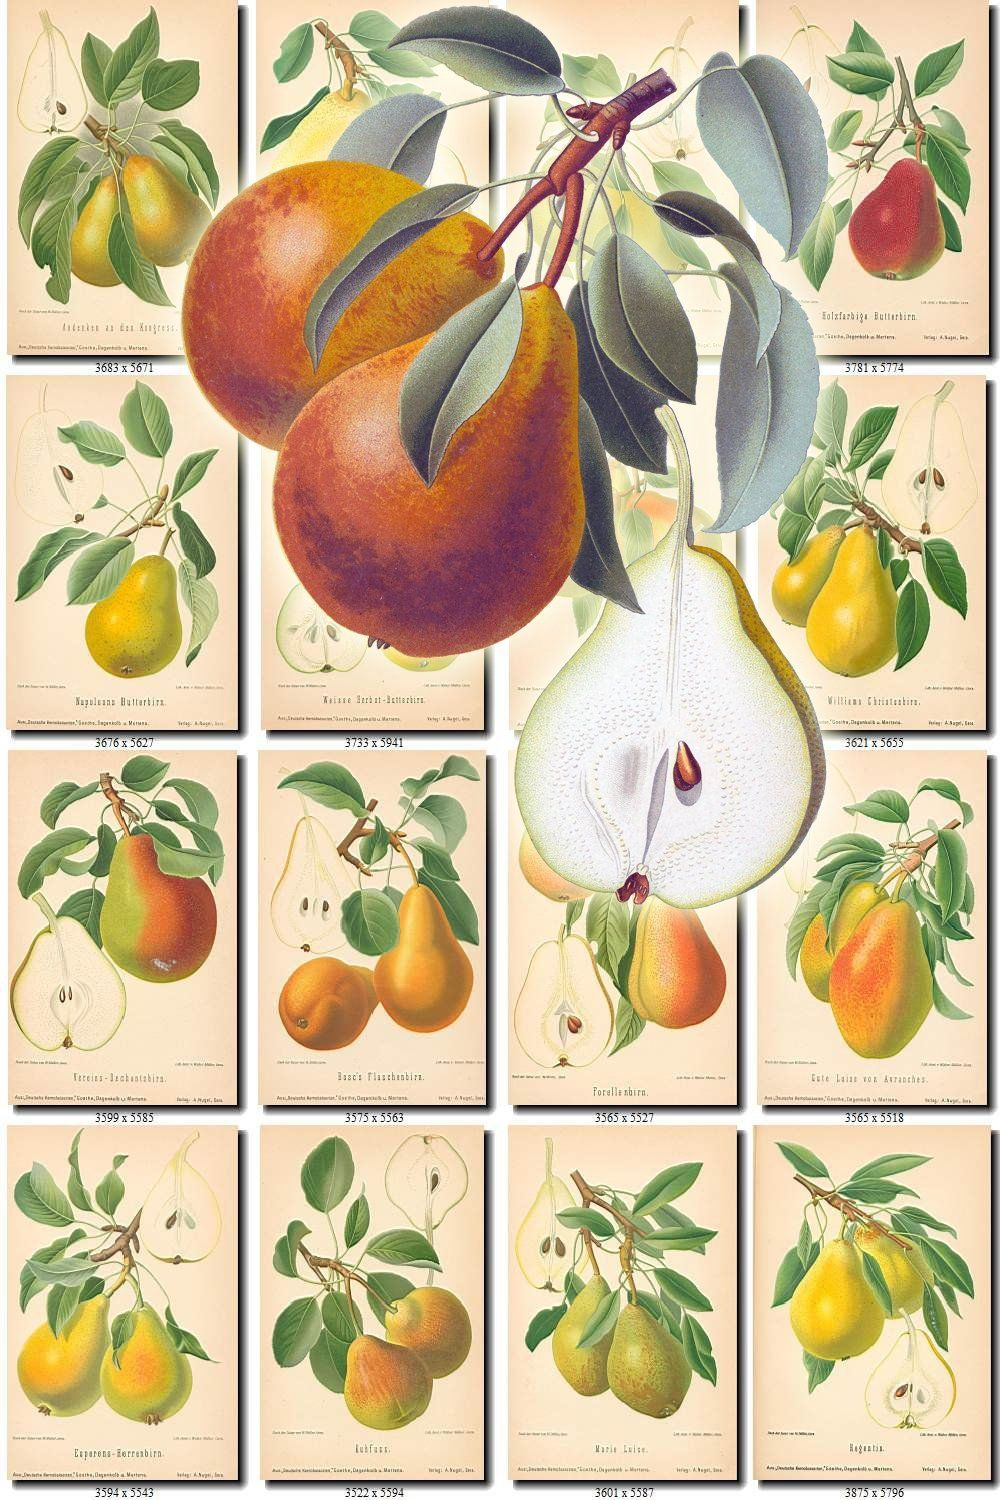 Pear collection of vintage images pears with other fruits